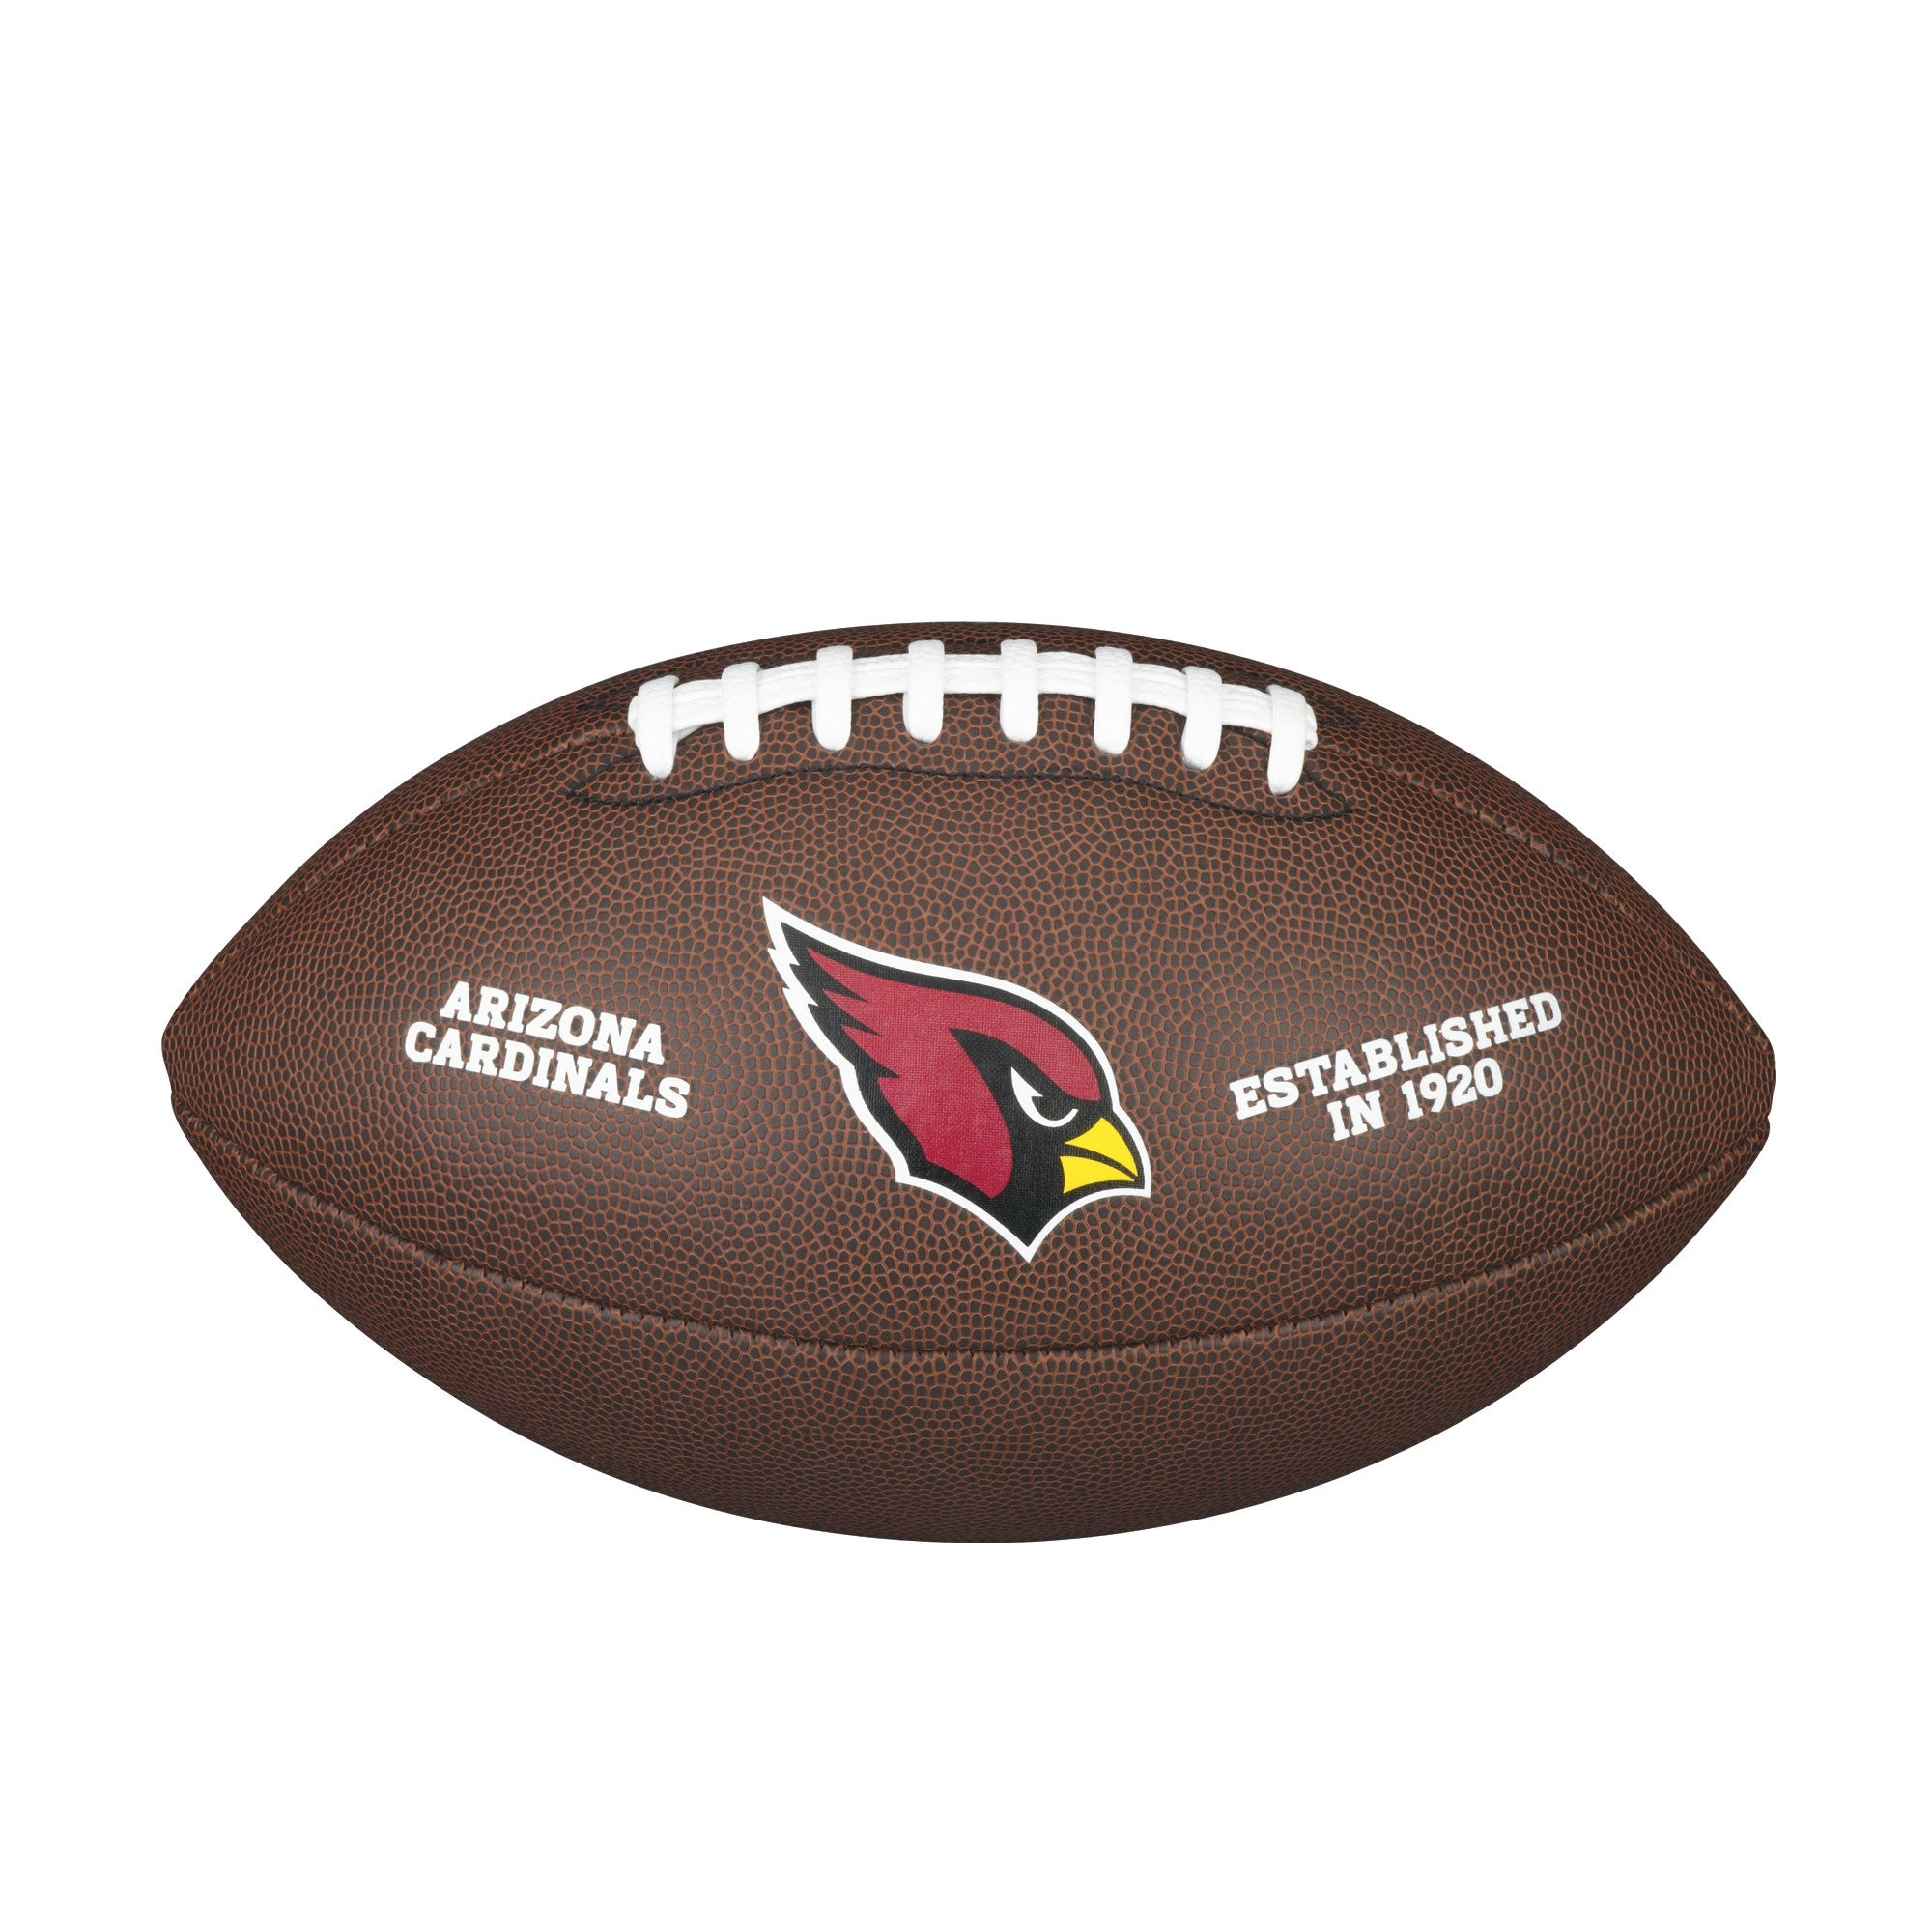 NFL TEAM LOGO COMPOSITE FOOTBALL - OFFICIAL, ARIZONA CARDINALS